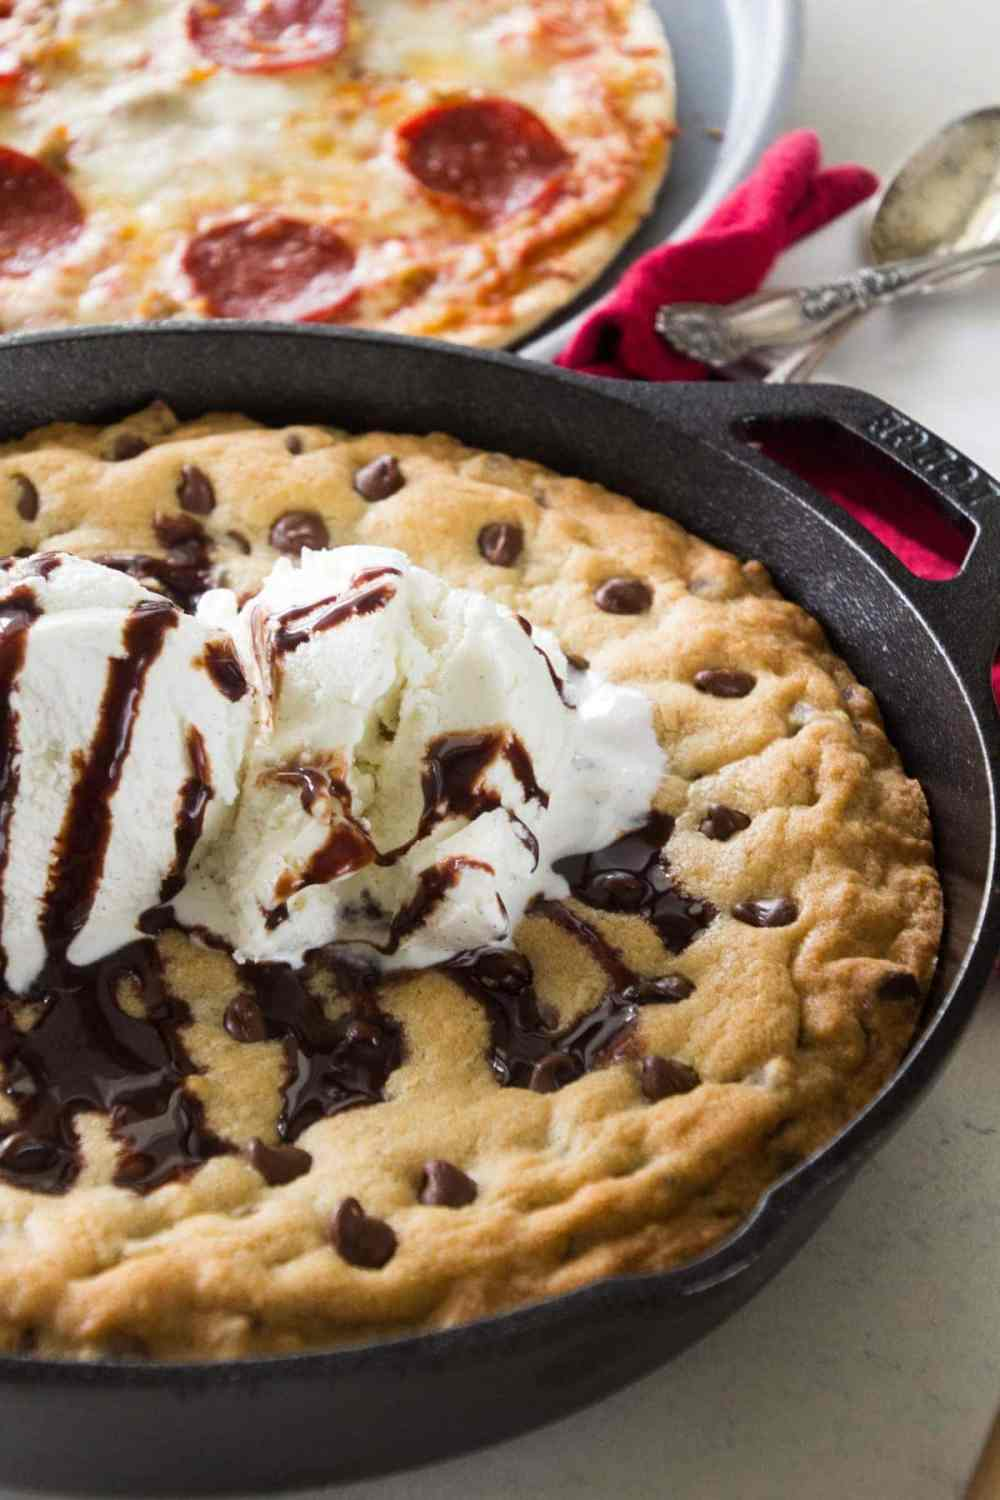 An amazing Chocolate Chip Skillet Cookie topped with ice cream and chocolate drizzle.